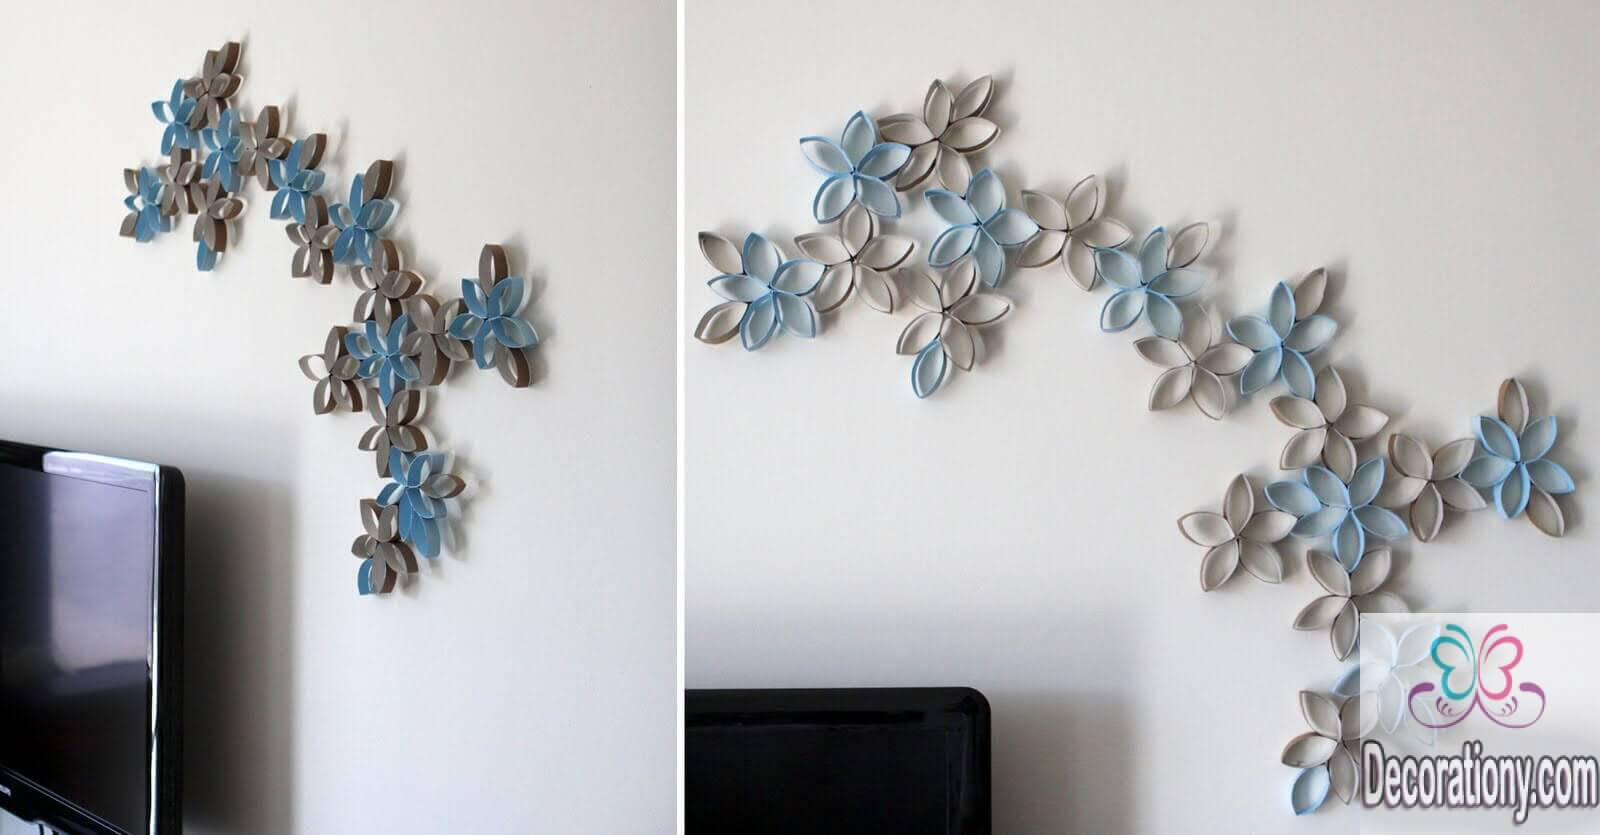 Diy Wall Decor Lights : Living room wall decor ideas